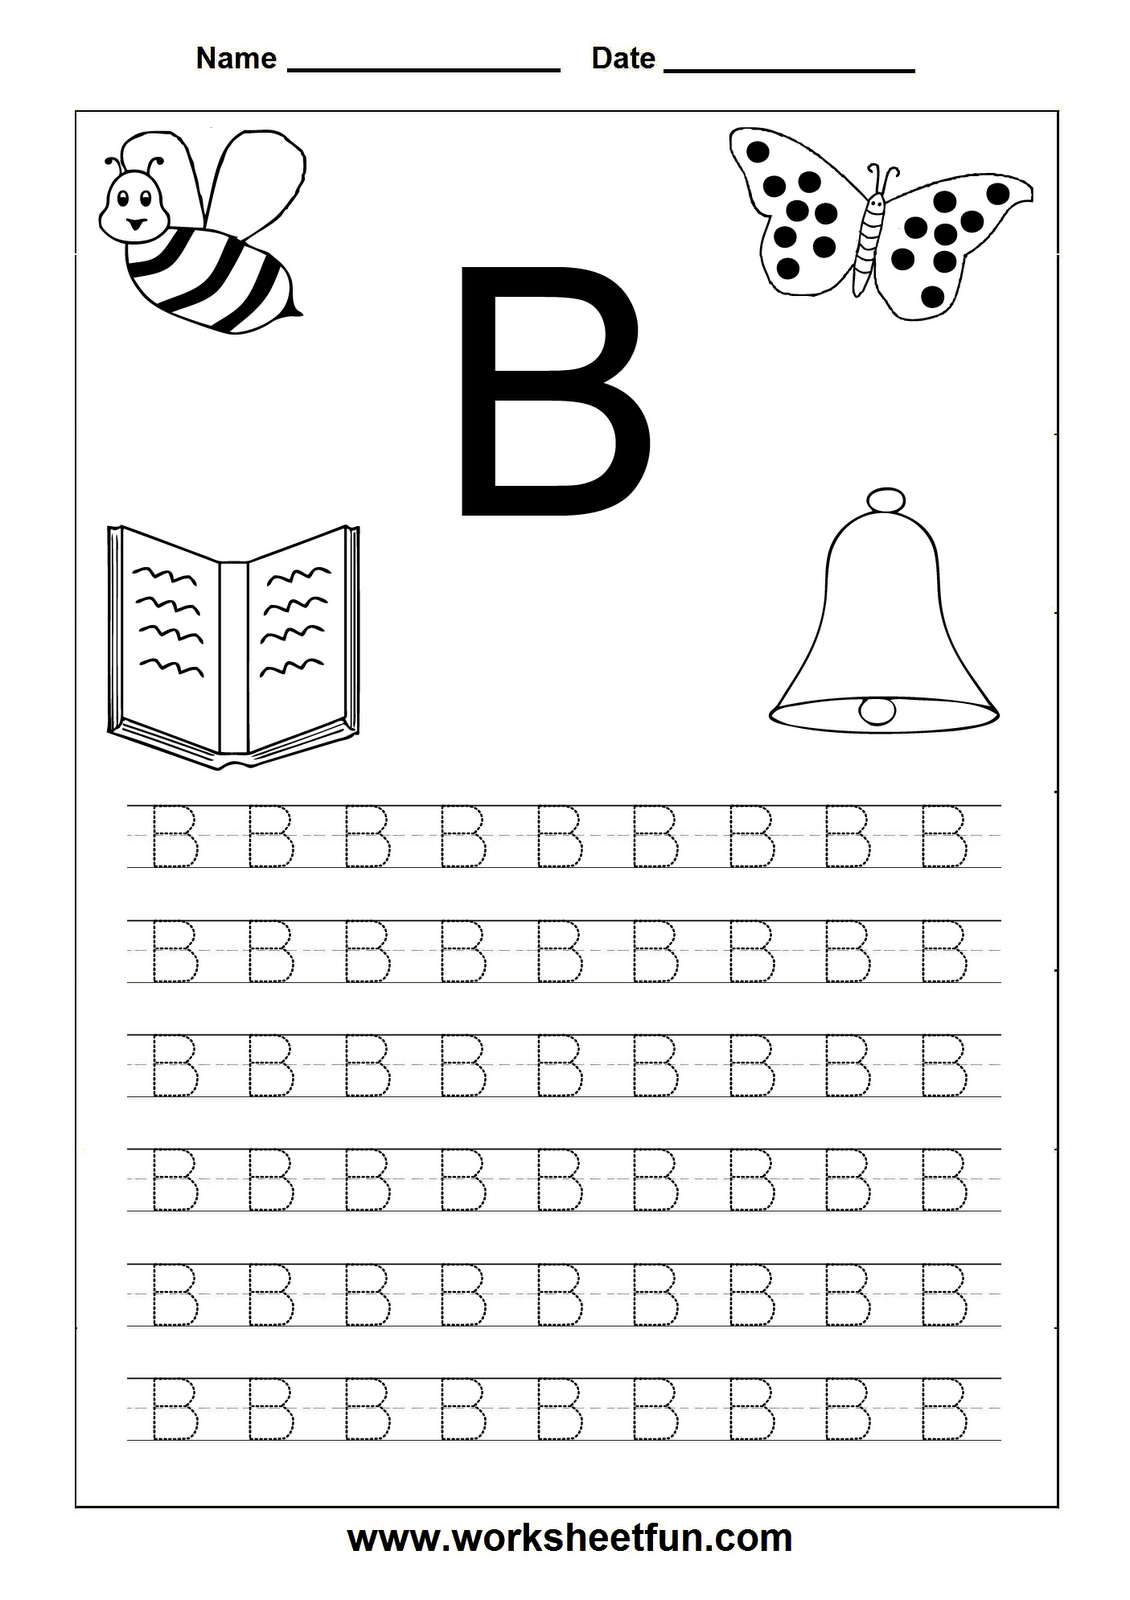 math worksheet : 1000 images about alphabet on pinterest  alphabet worksheets  : Worksheets On Alphabets For Kindergarten